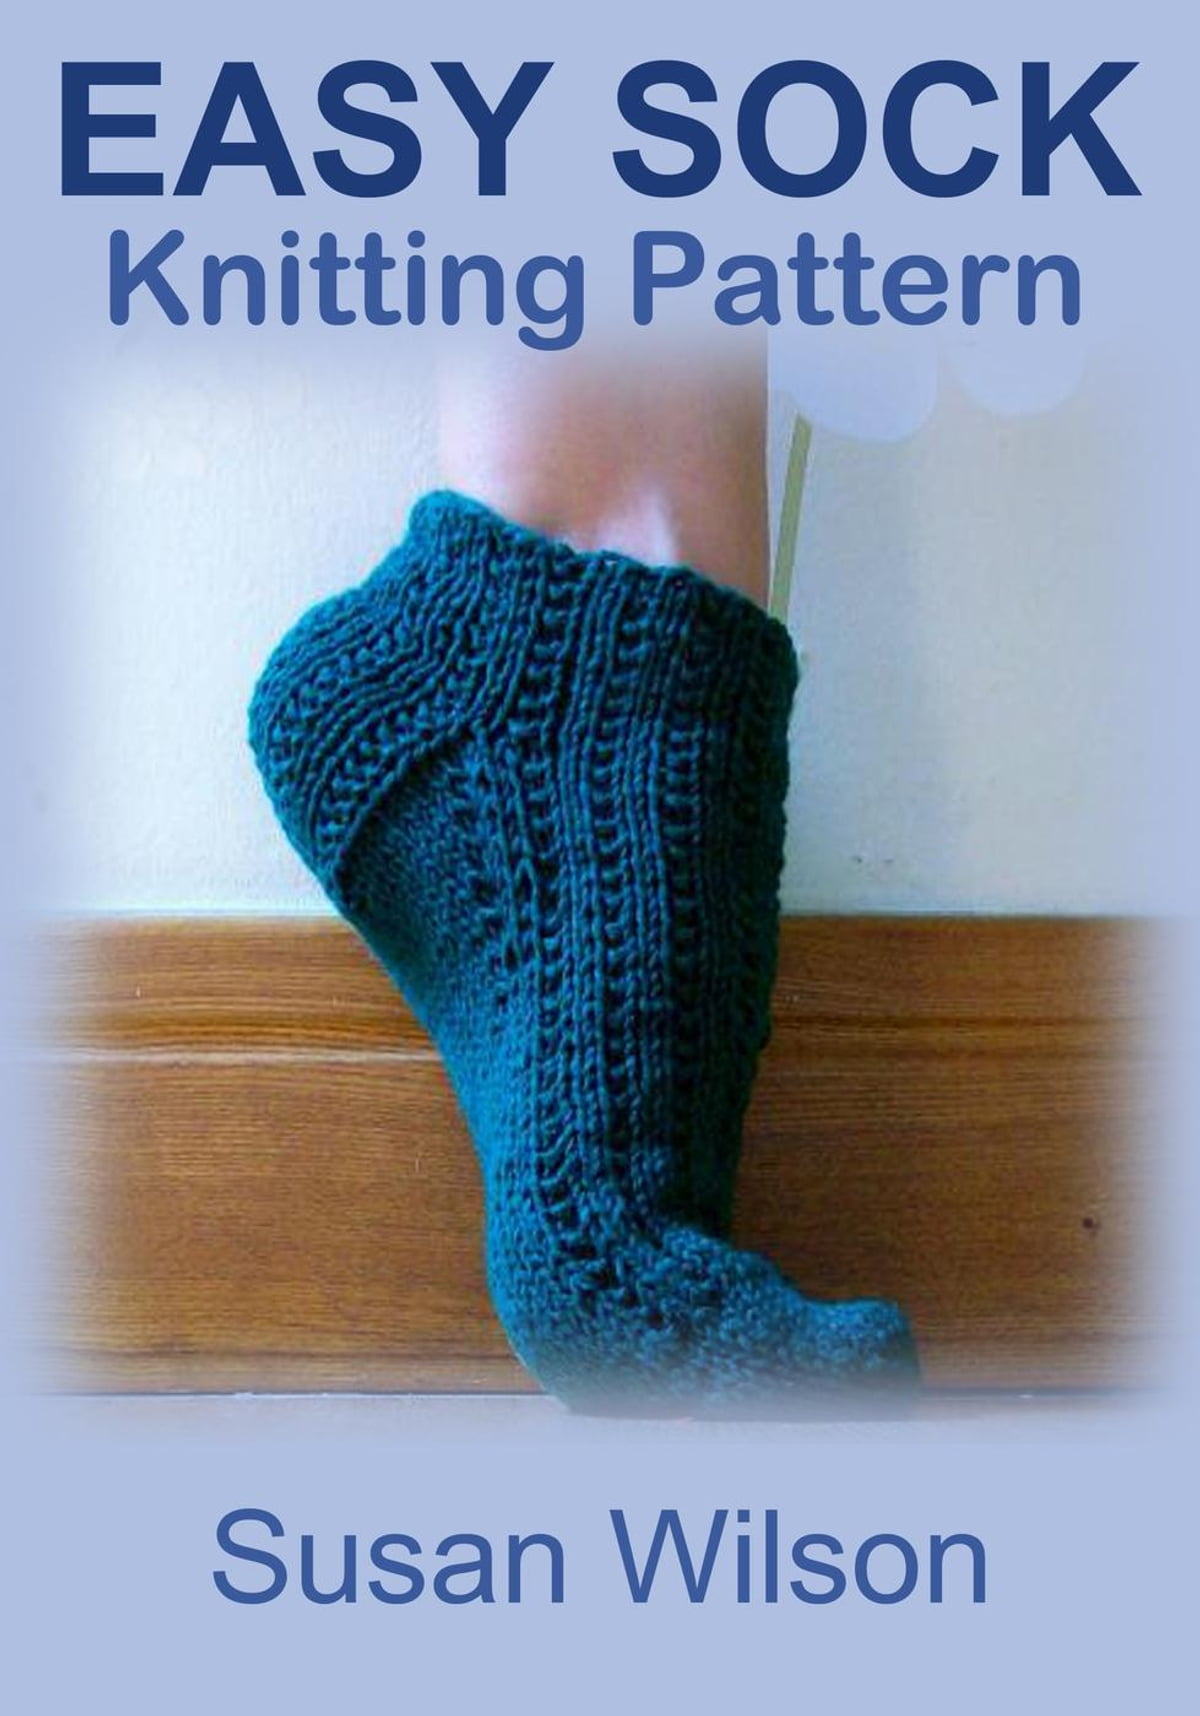 Easy Sock Knitting Pattern Ebook By Susan Wilson 9781502278708